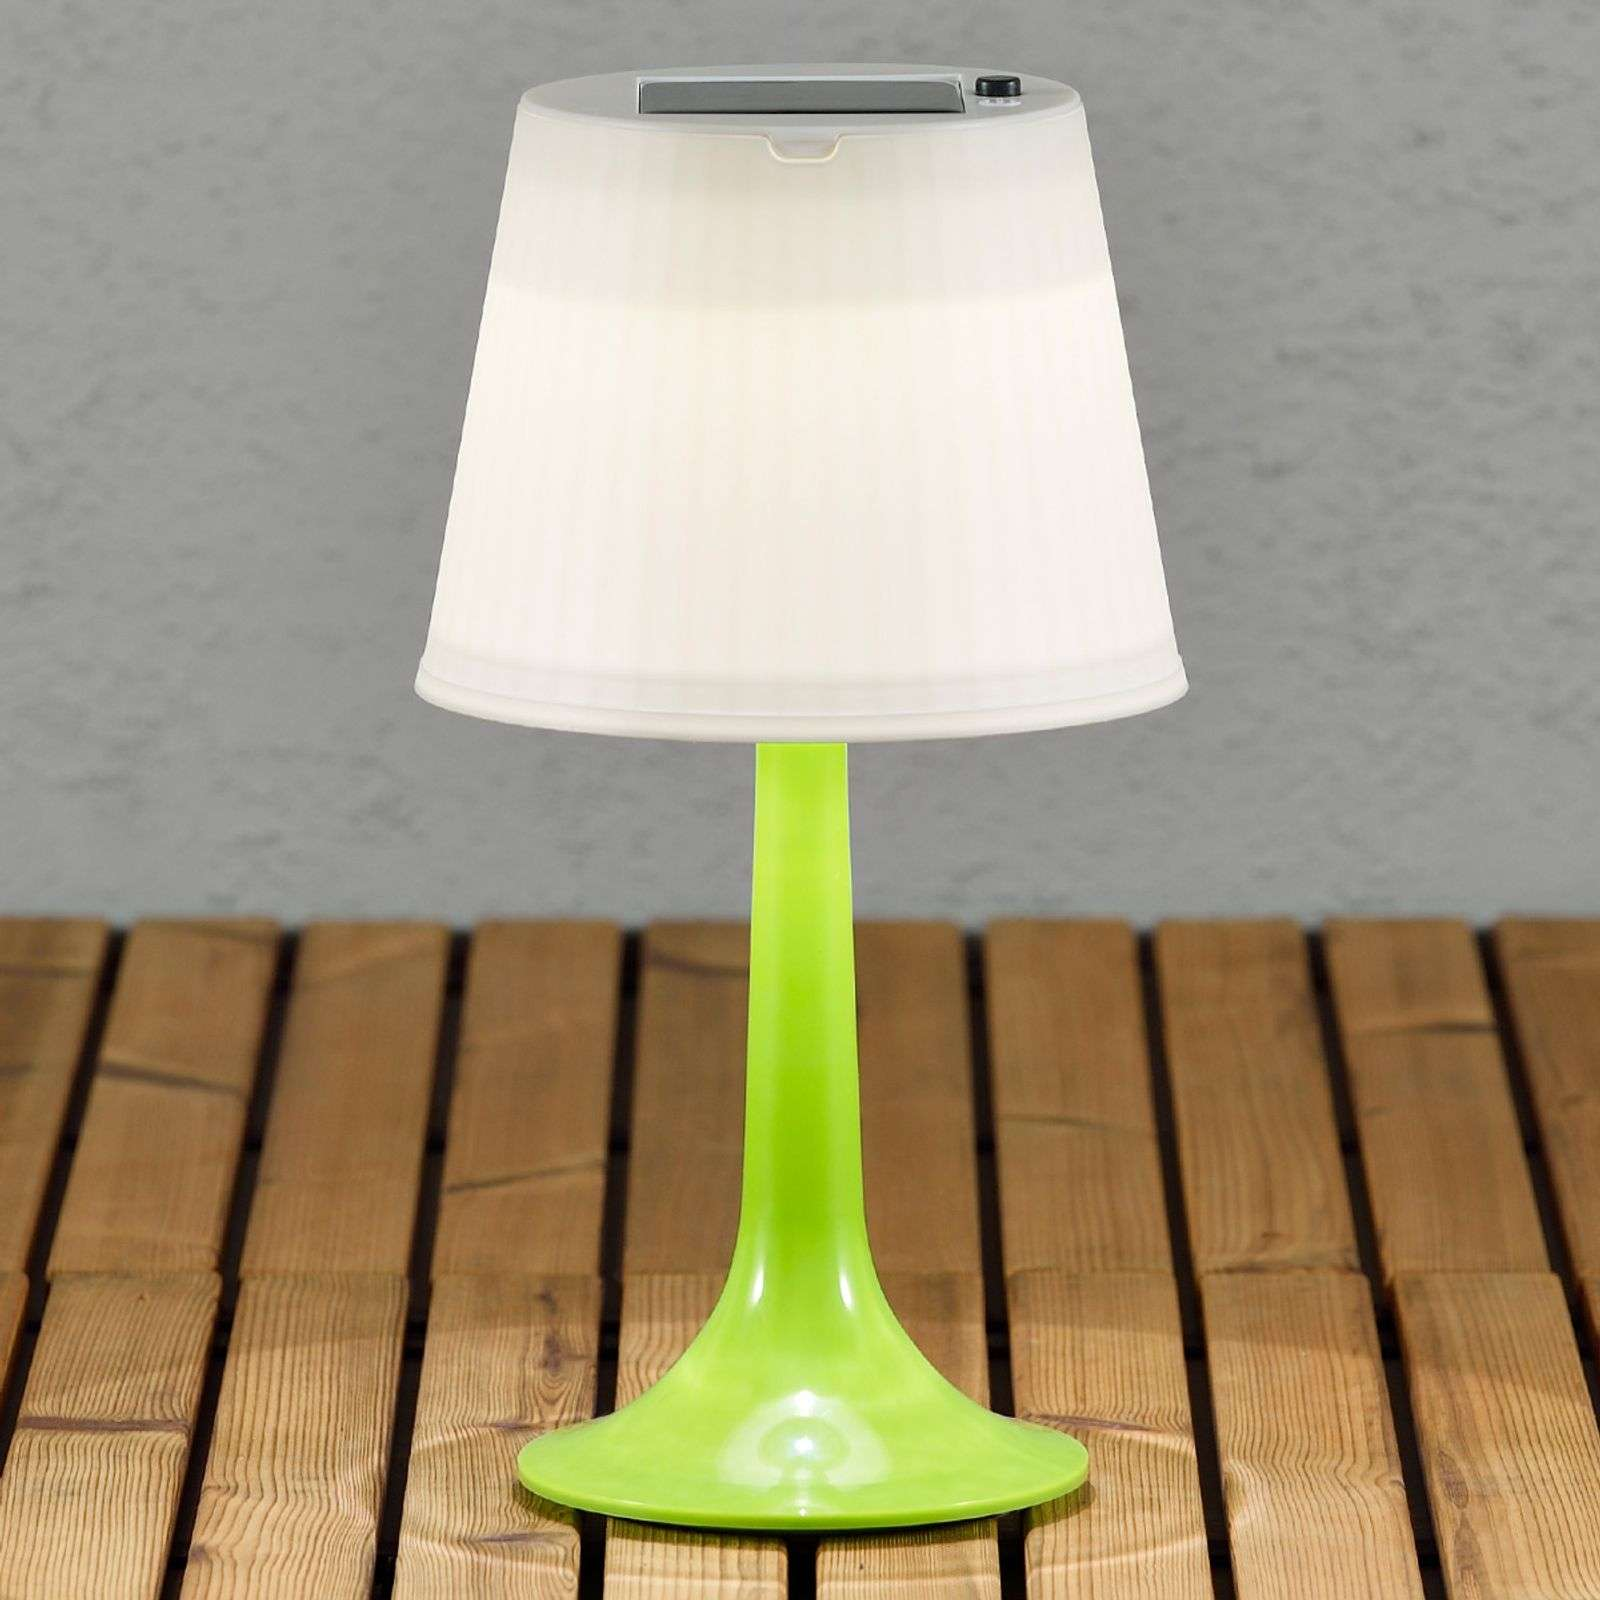 Lampe à poser solaire LED verte Assisi Sitra